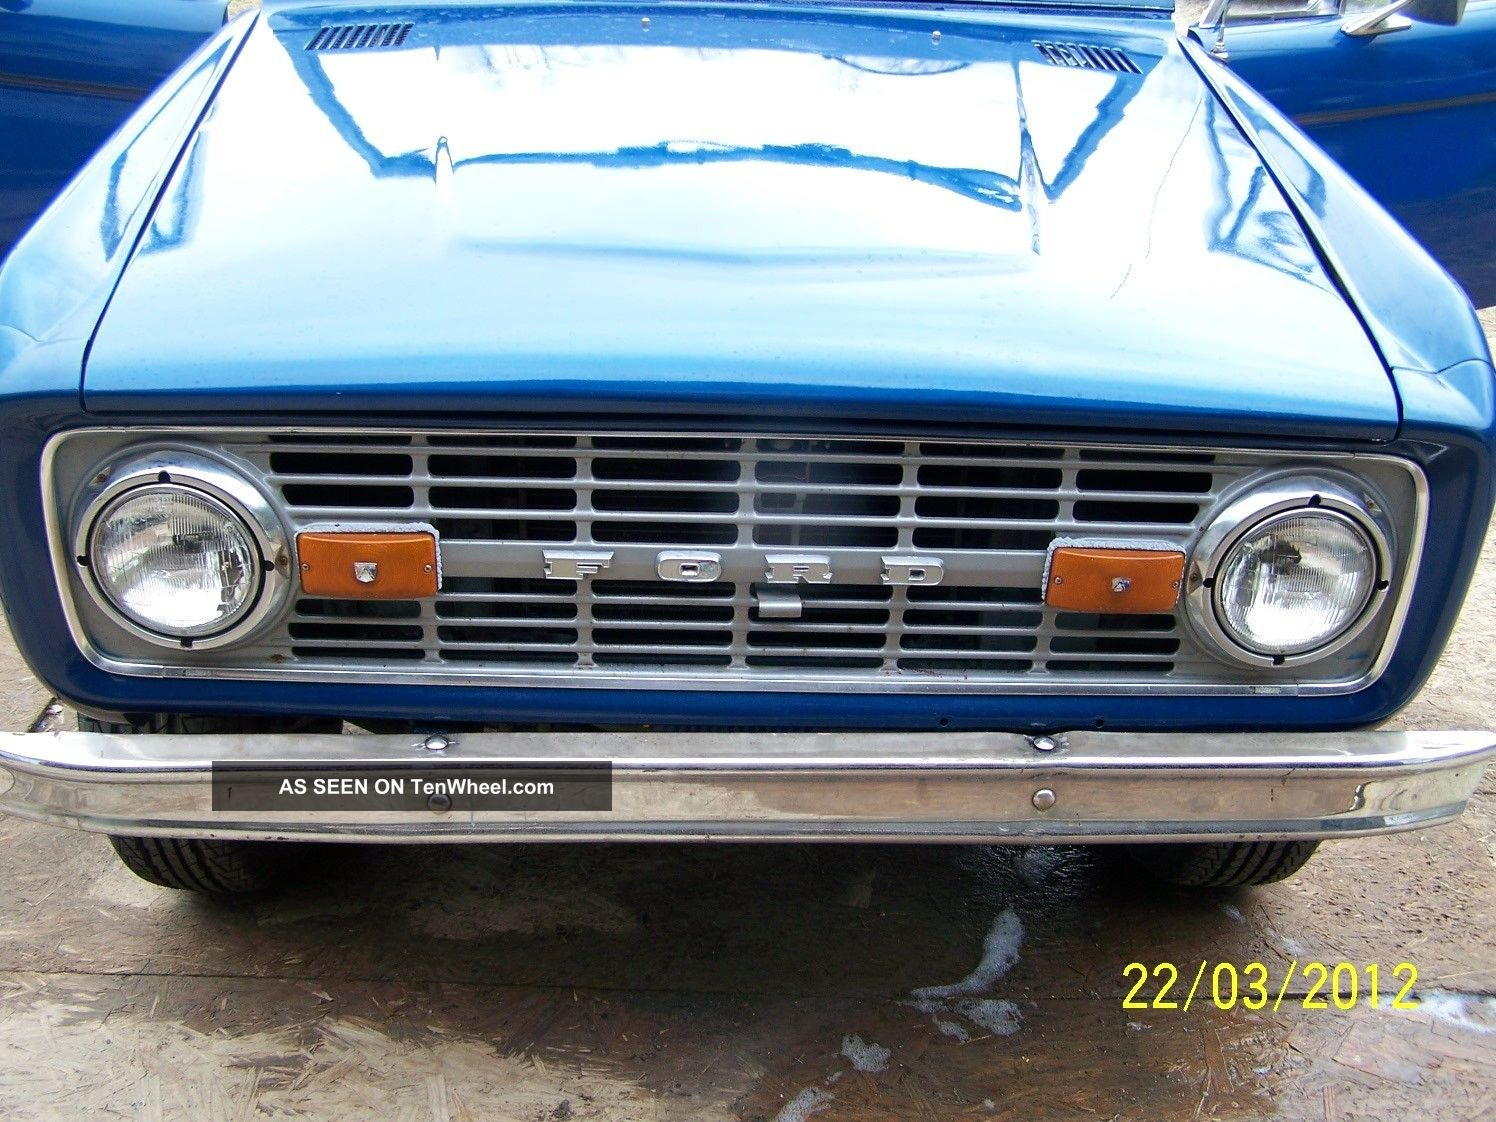 1977 Ford Bronco,  Automatic,  Power Steering,  Power Disc Brakes 302 V - 8 Bronco photo